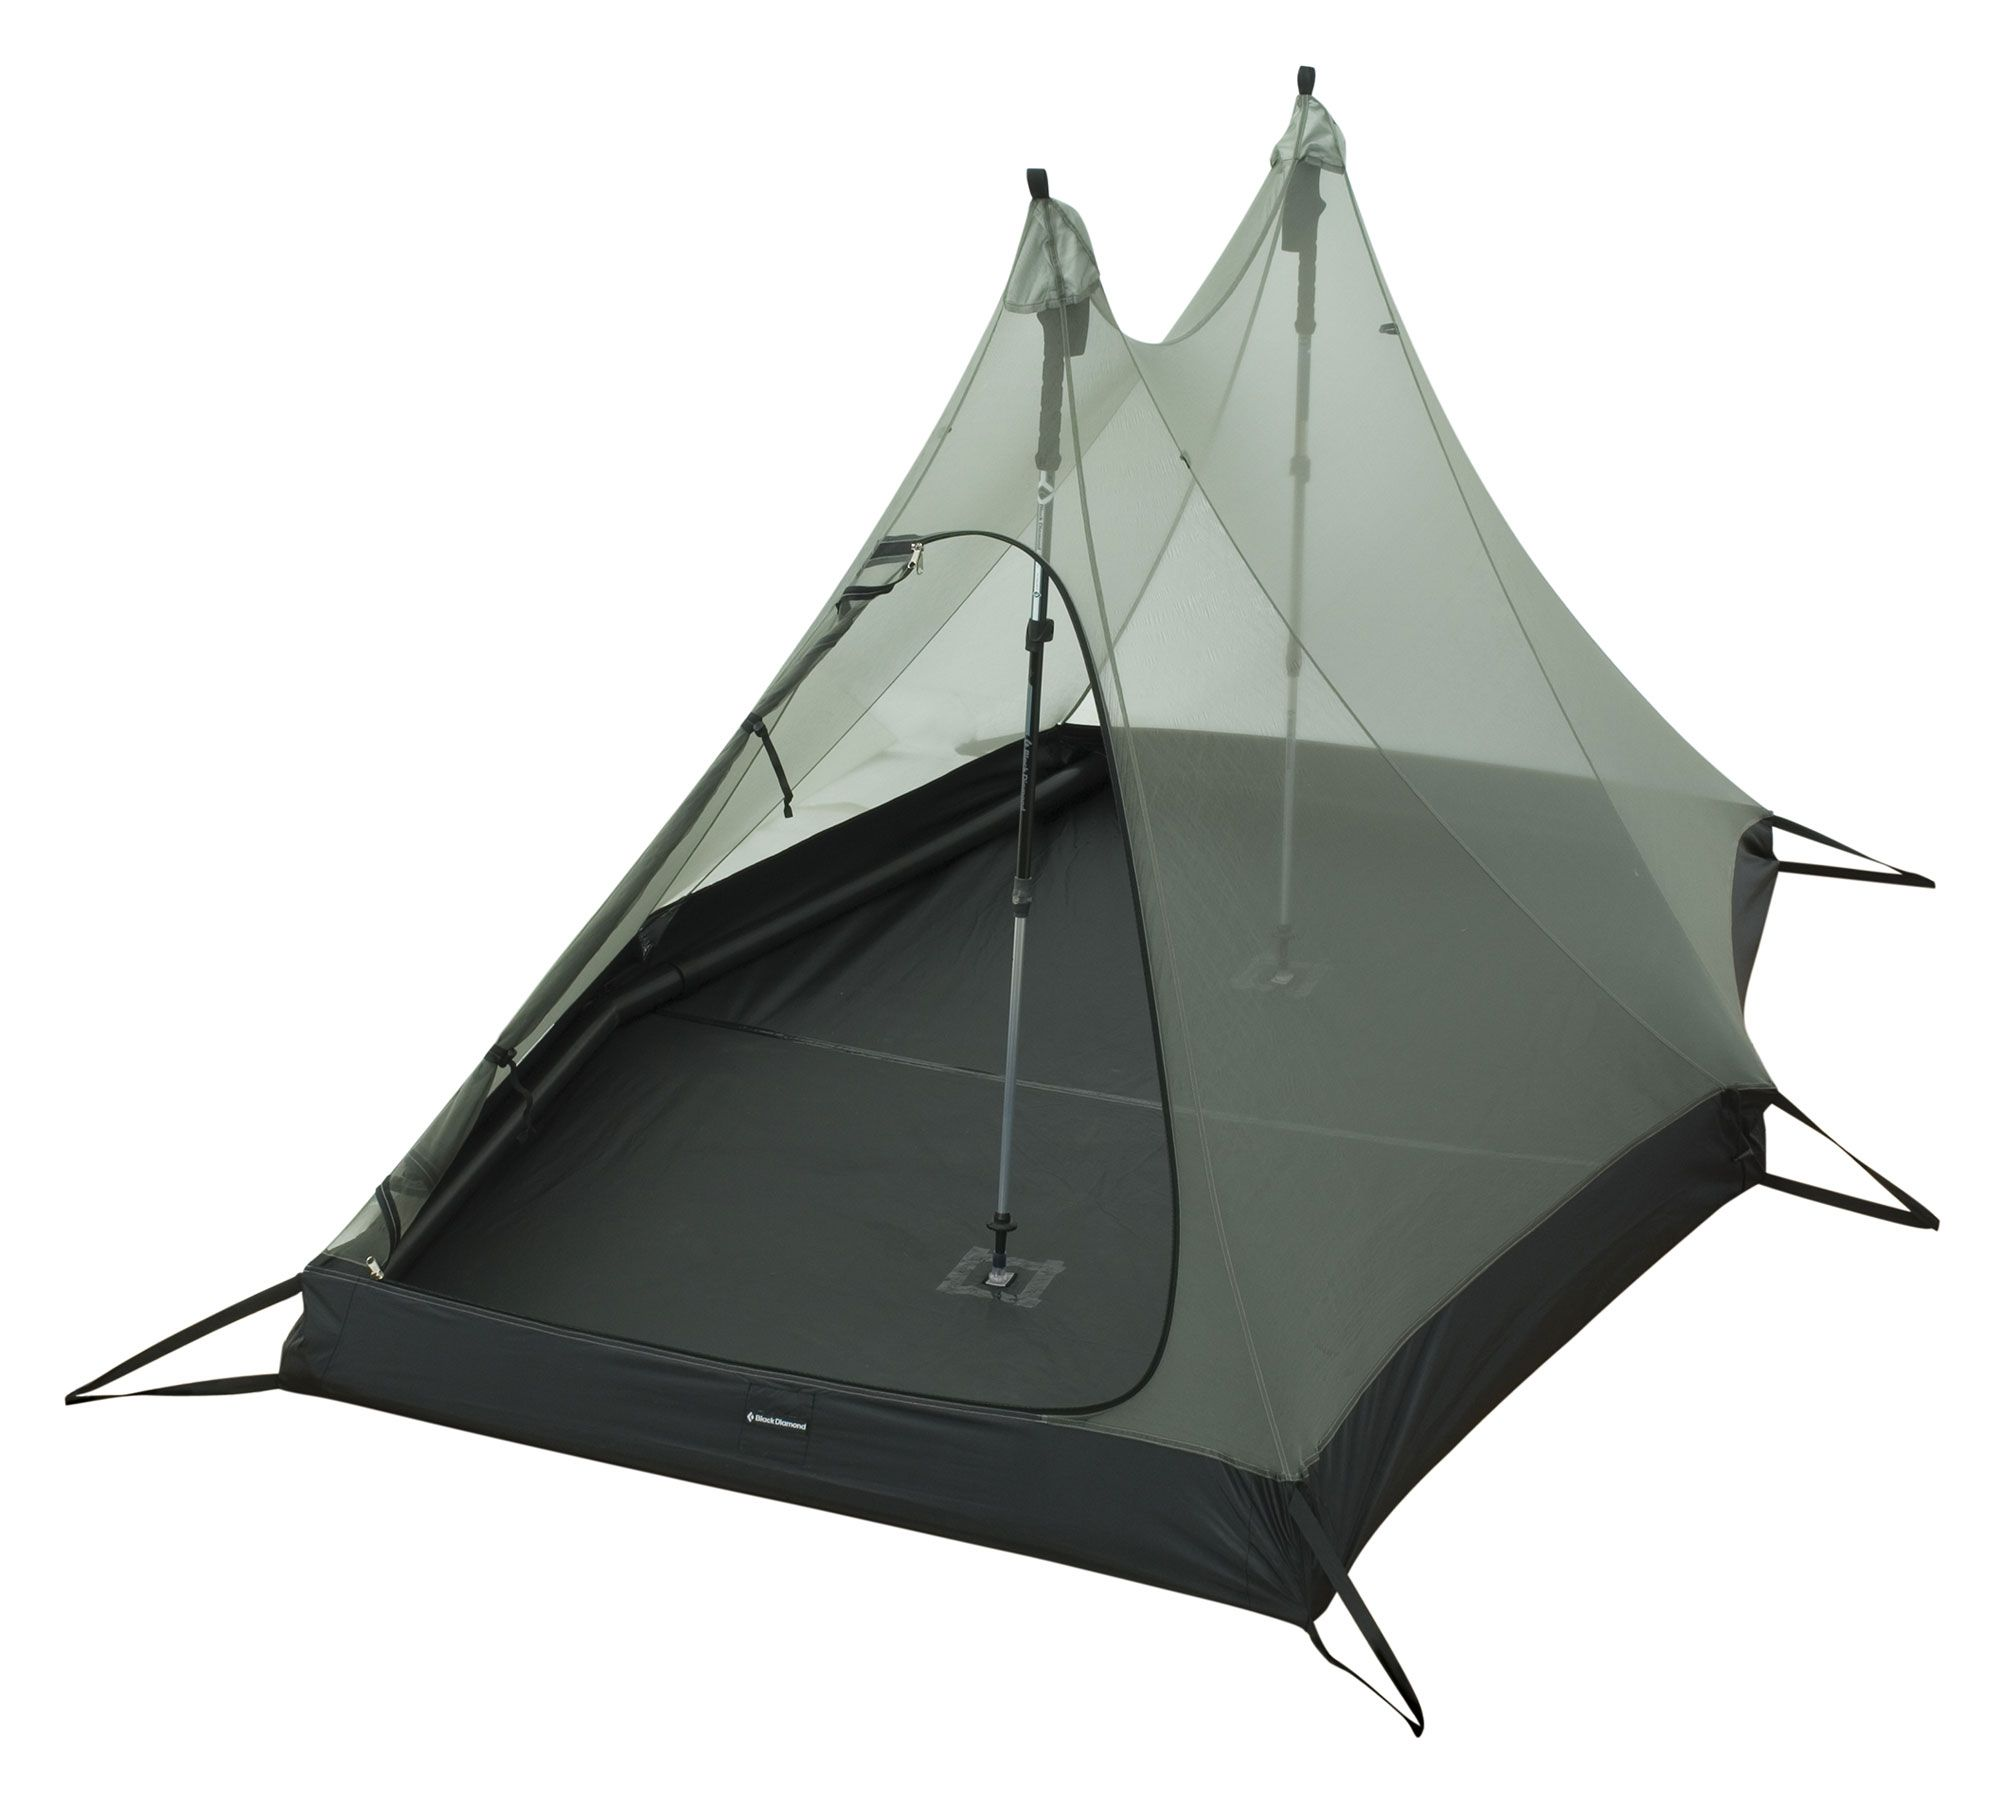 Beta Bug Tent Black Diamond Hiking Trekking Gear Tent Tent Camping Tent Sale